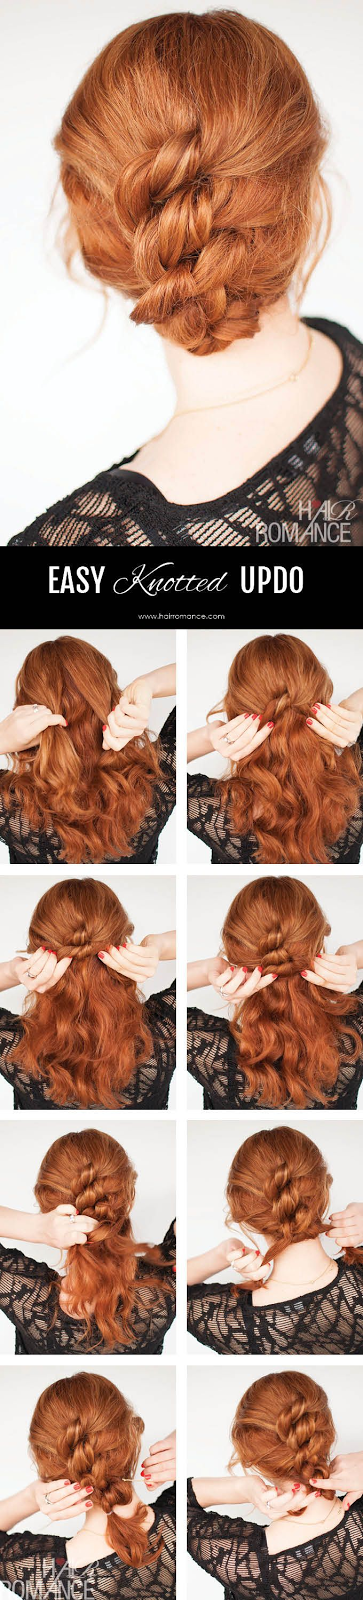 Hairstyle: Easy Knotted Updo